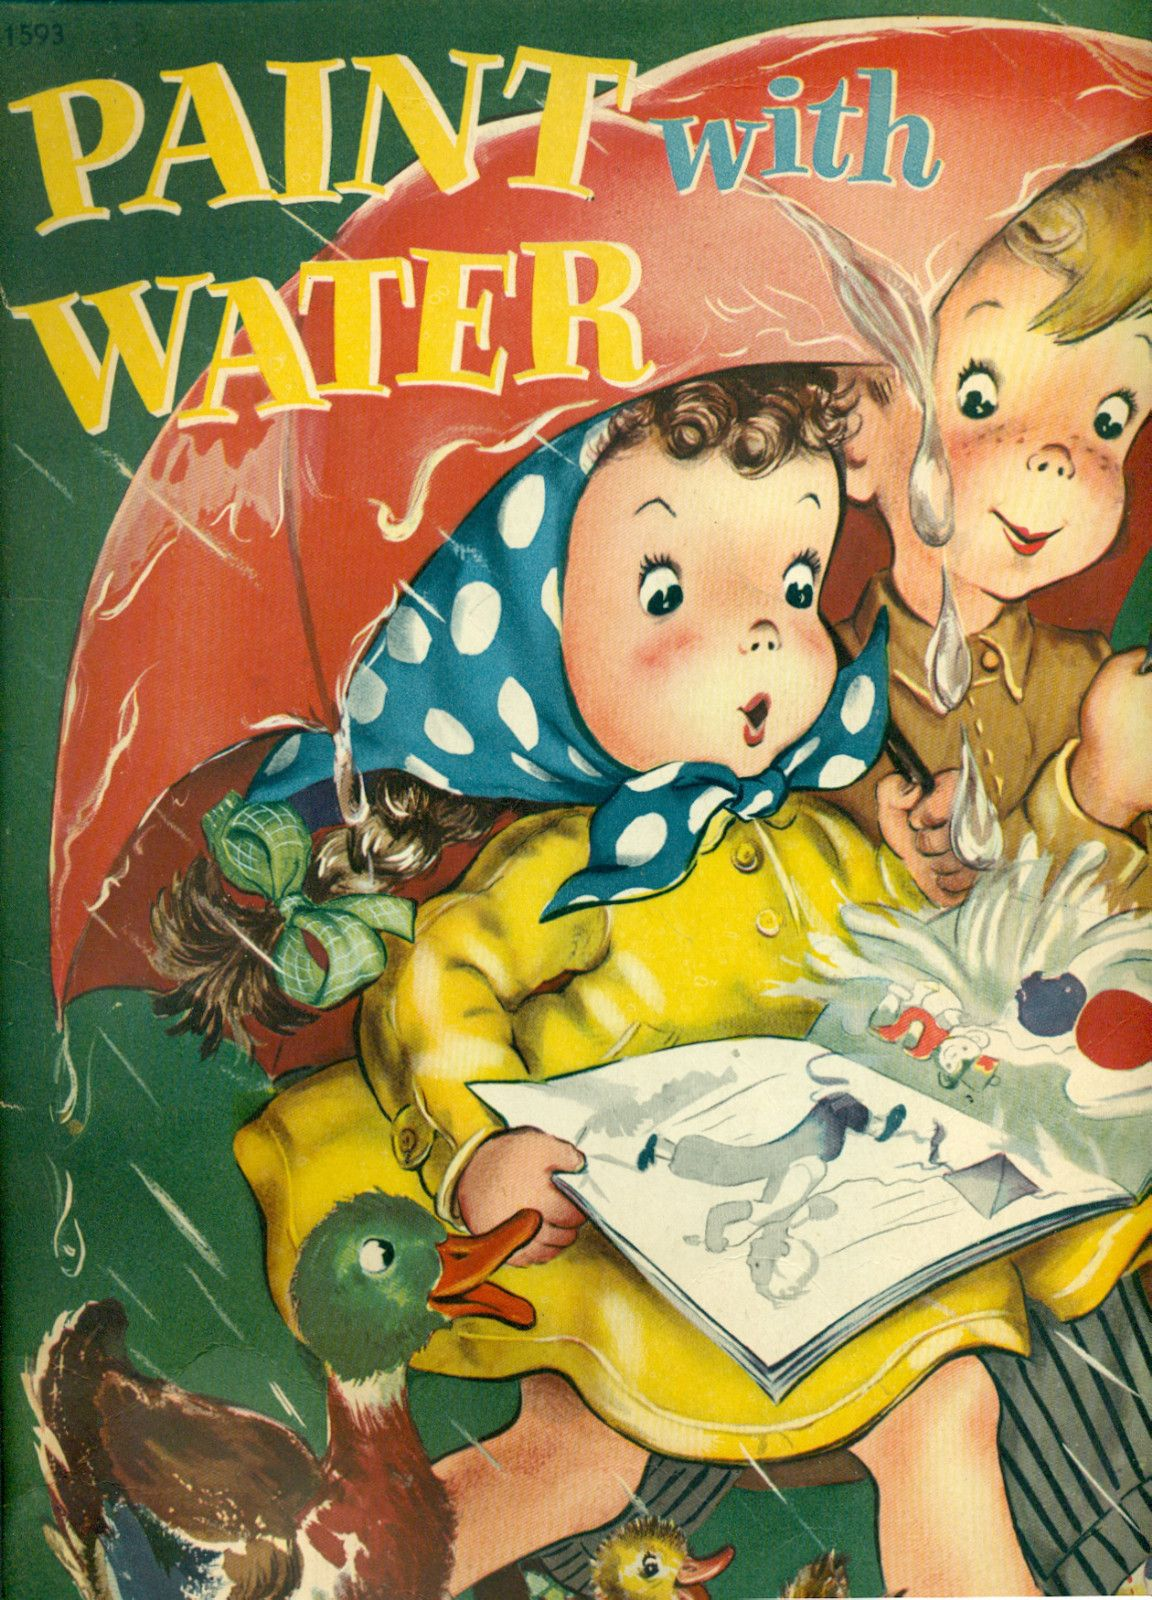 Paint with Water Coloring Book\'\', 1949 Merrill | eBay | Vintage ...